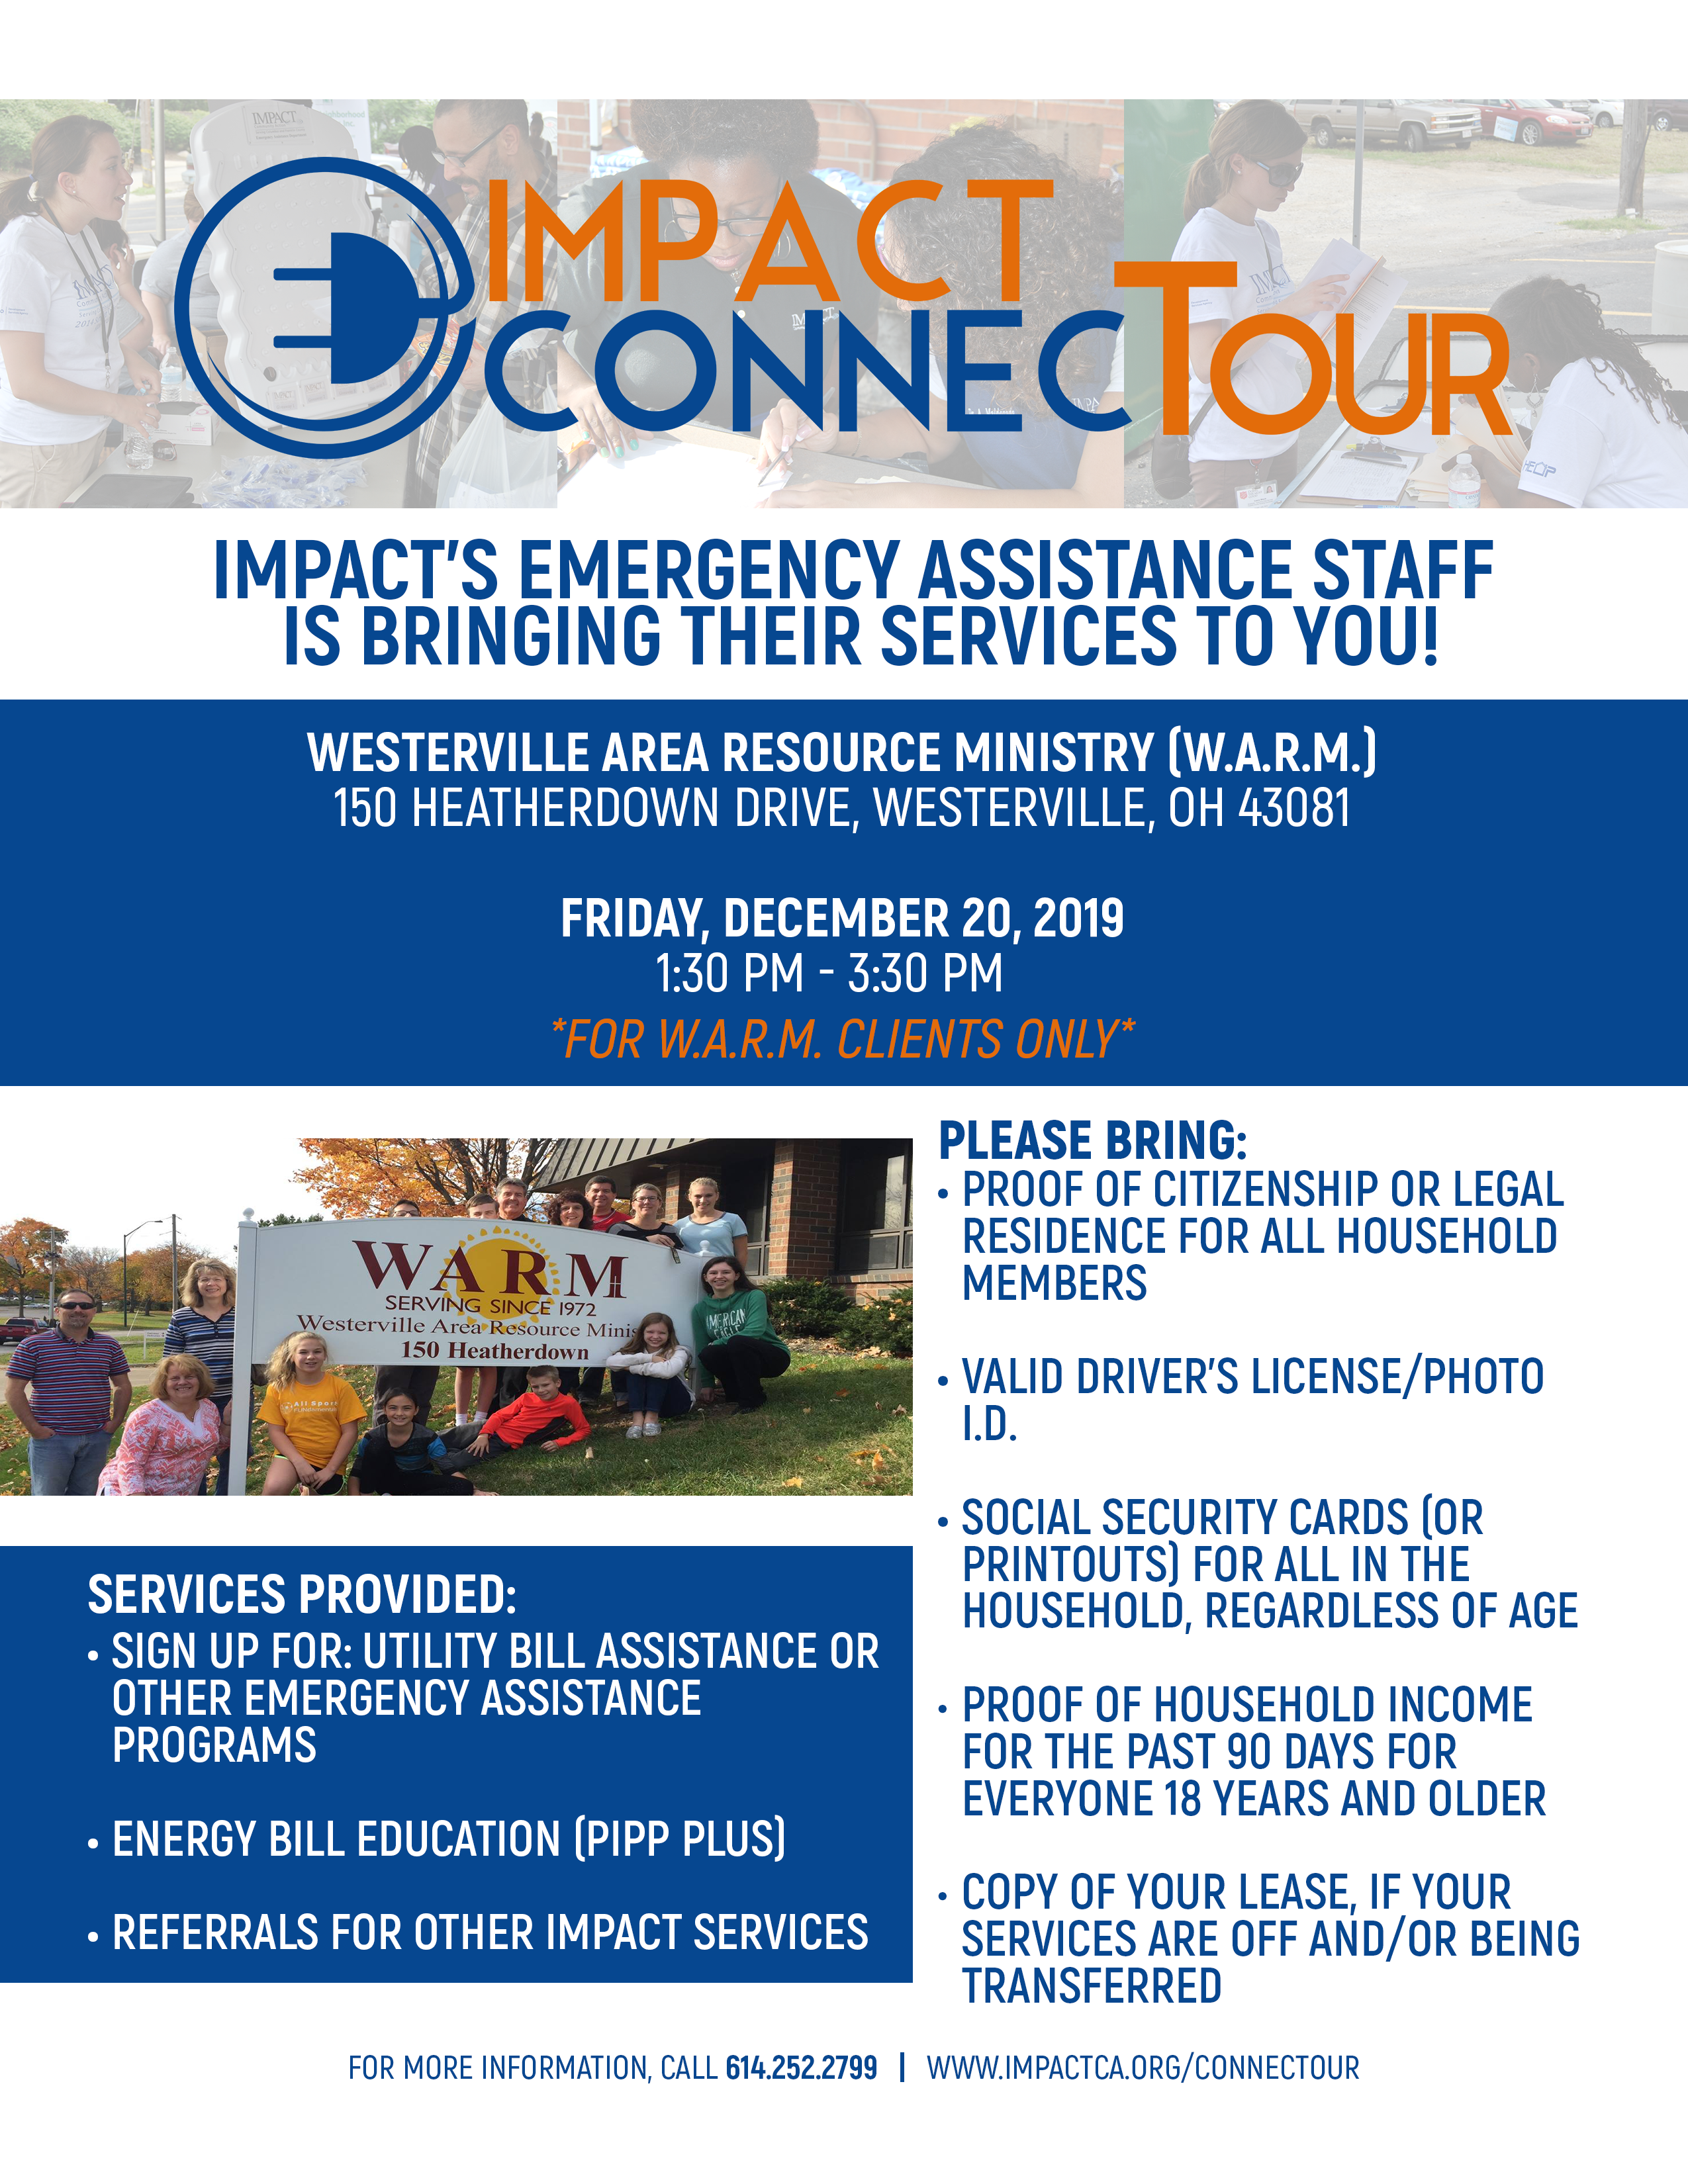 IMPACT ConnecTour (For W.A.R.M. Clients Only)